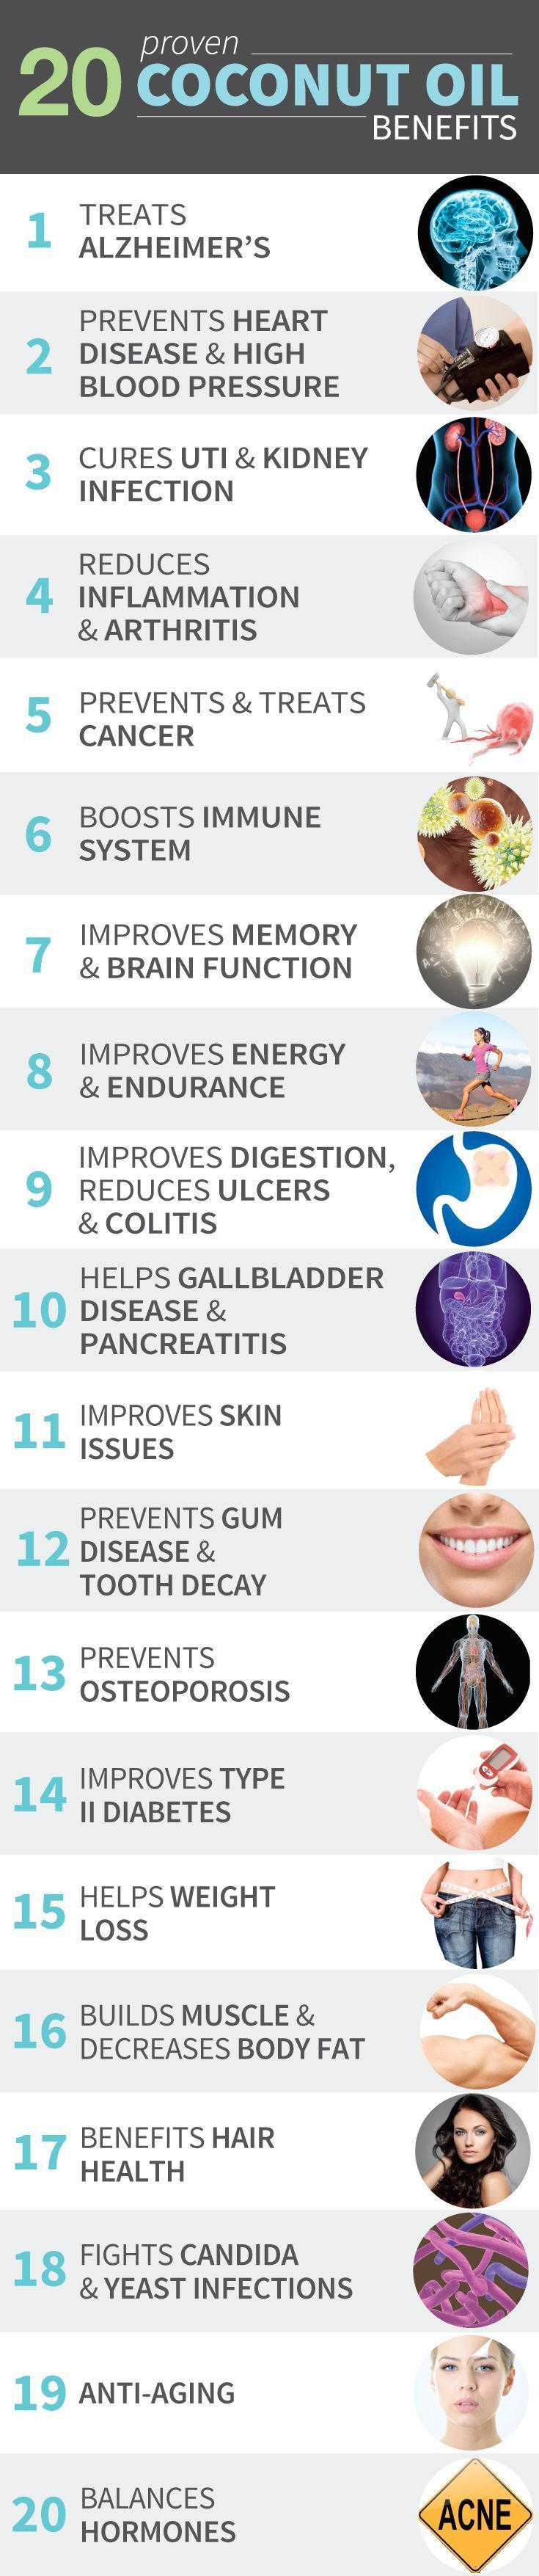 Proven Coconut Oil Health Benefits List infographic